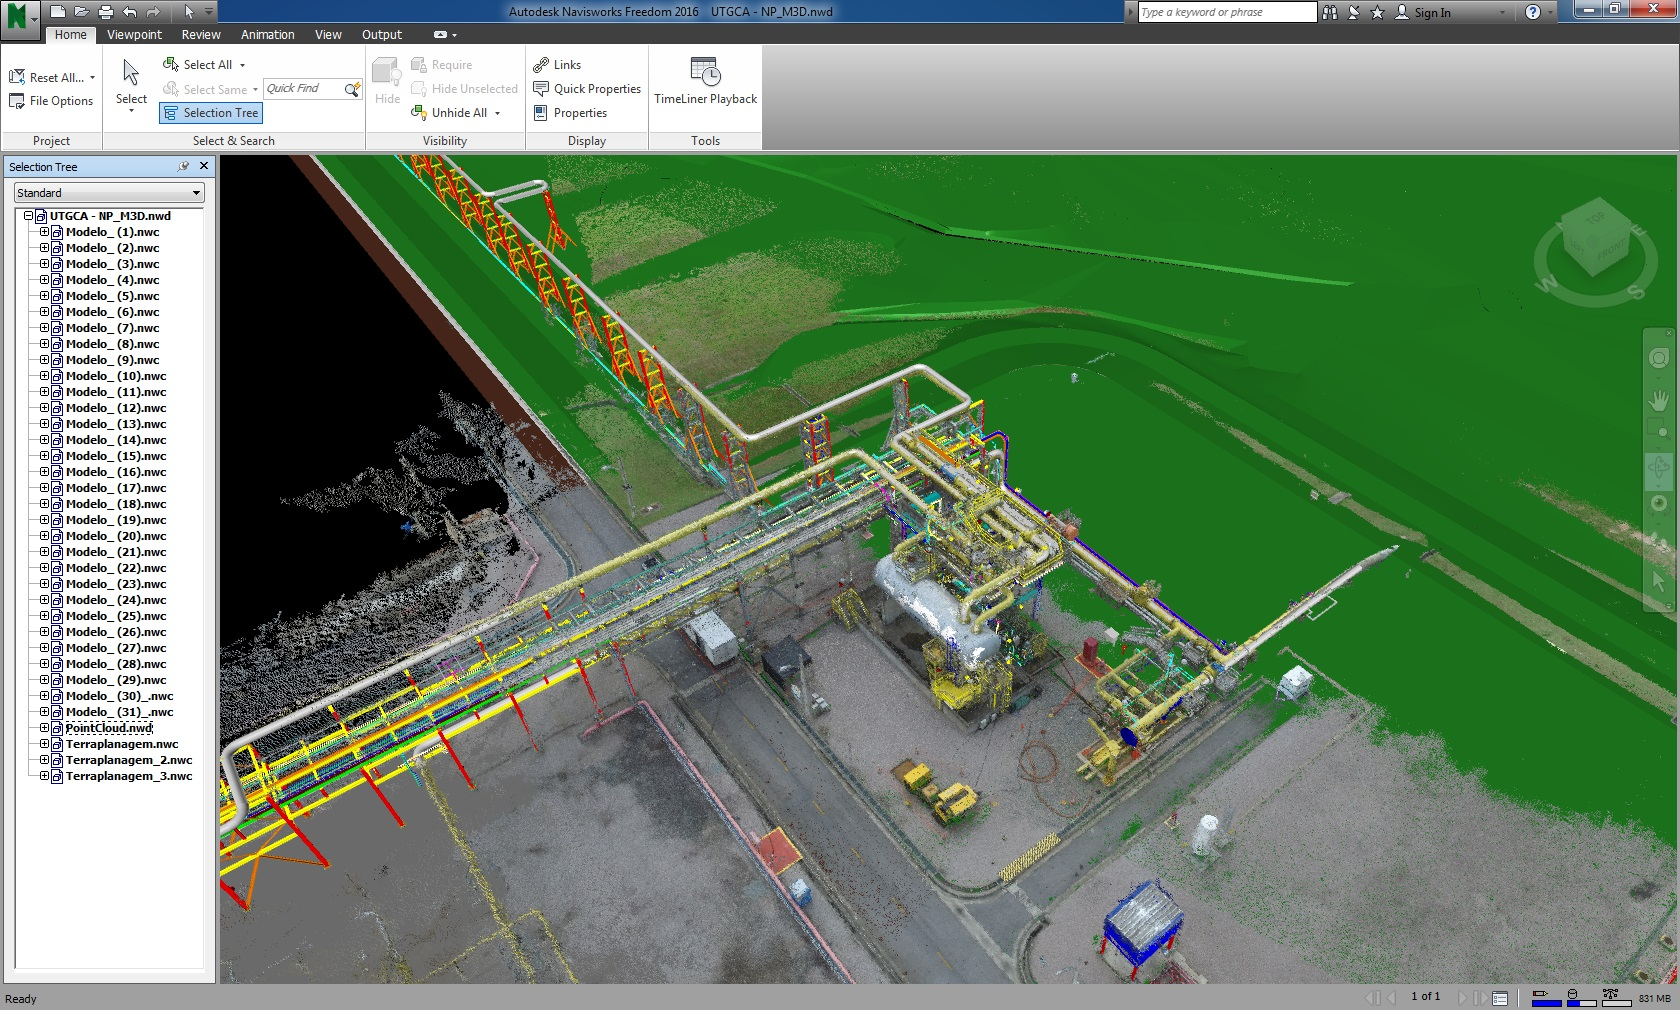 Industrial mapping output using drone mapping and photogrammetry software